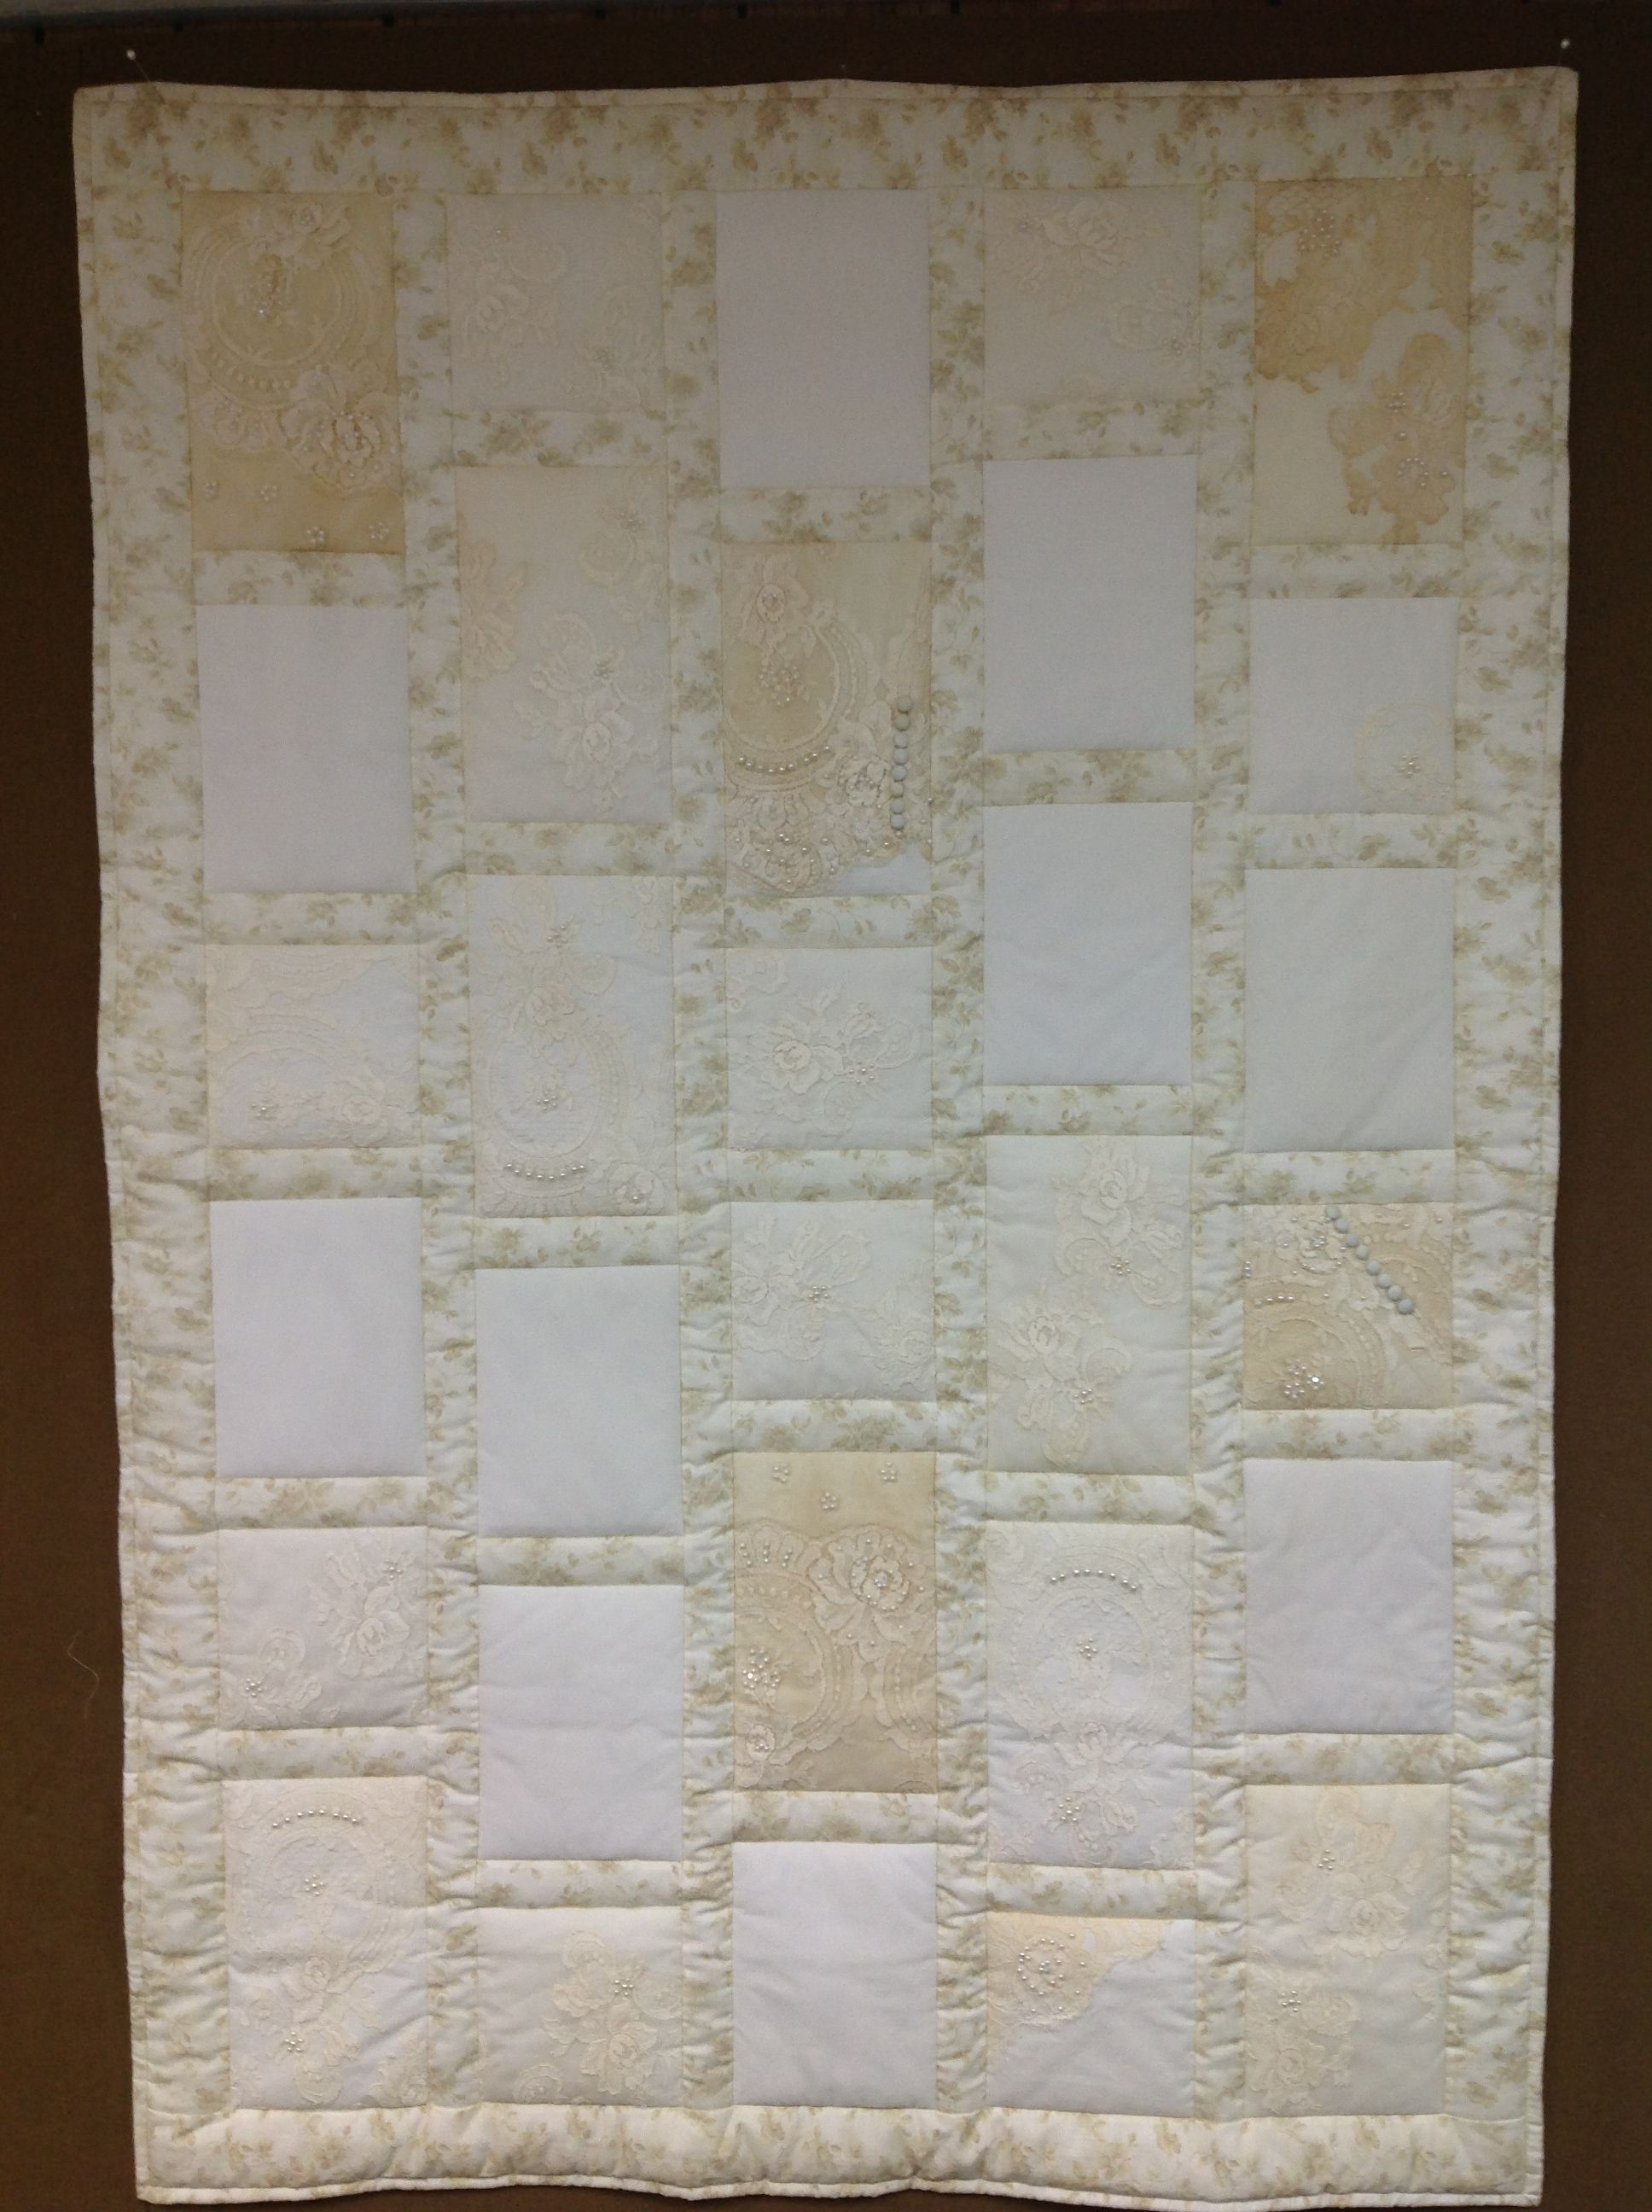 Quilt made with wedding dresses.